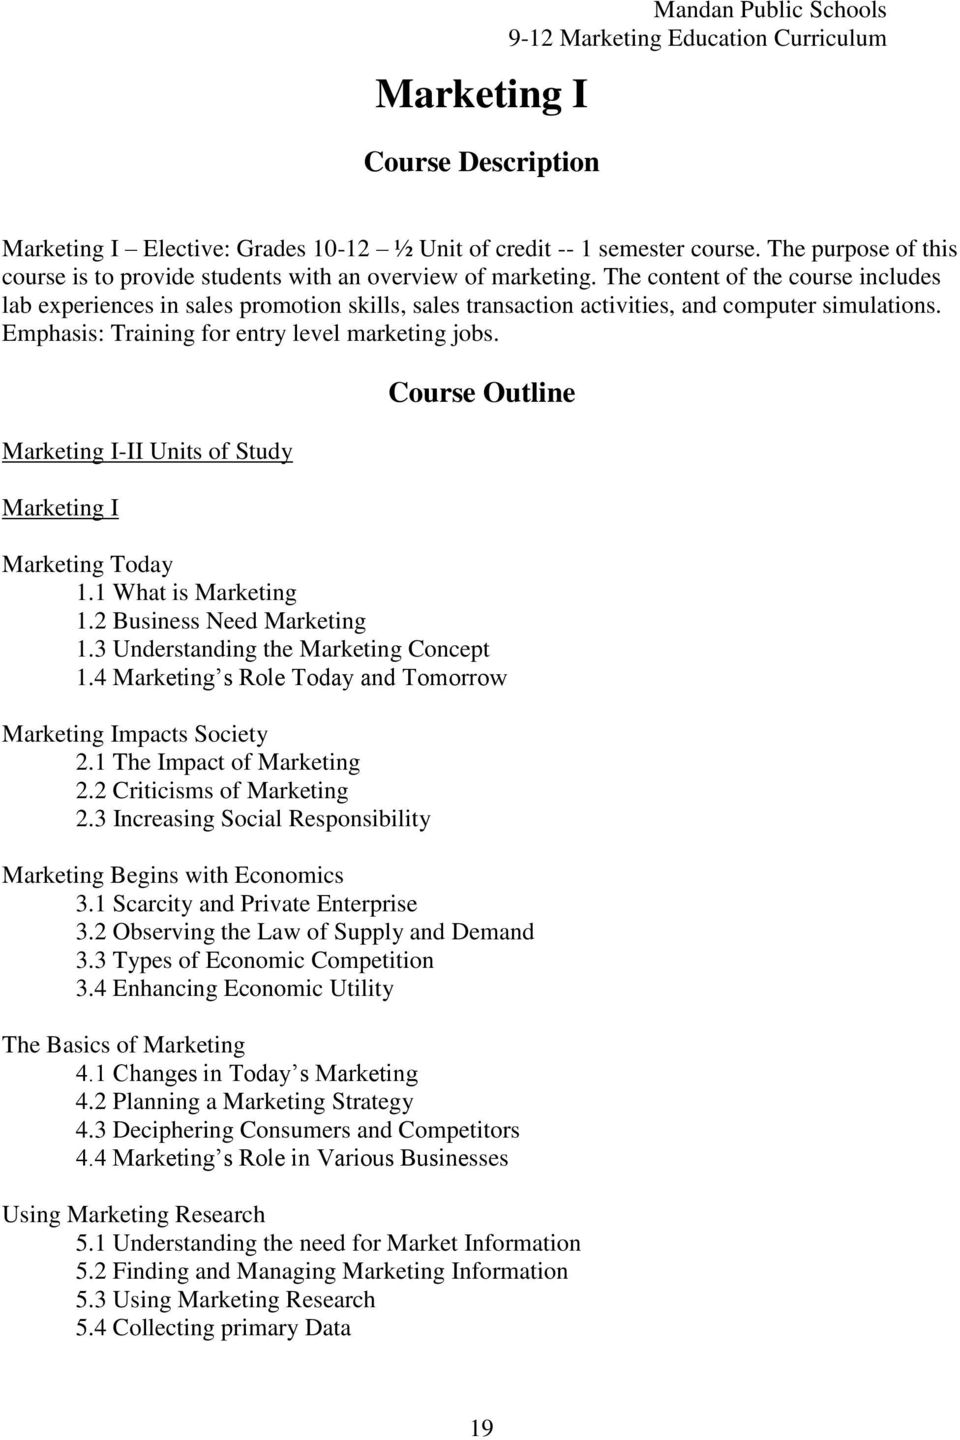 Marketing I-II Units of Study Marketing I Course Outline Marketing Today 1.1 What is Marketing 1.2 Business Need Marketing 1.3 Understanding the Marketing Concept 1.